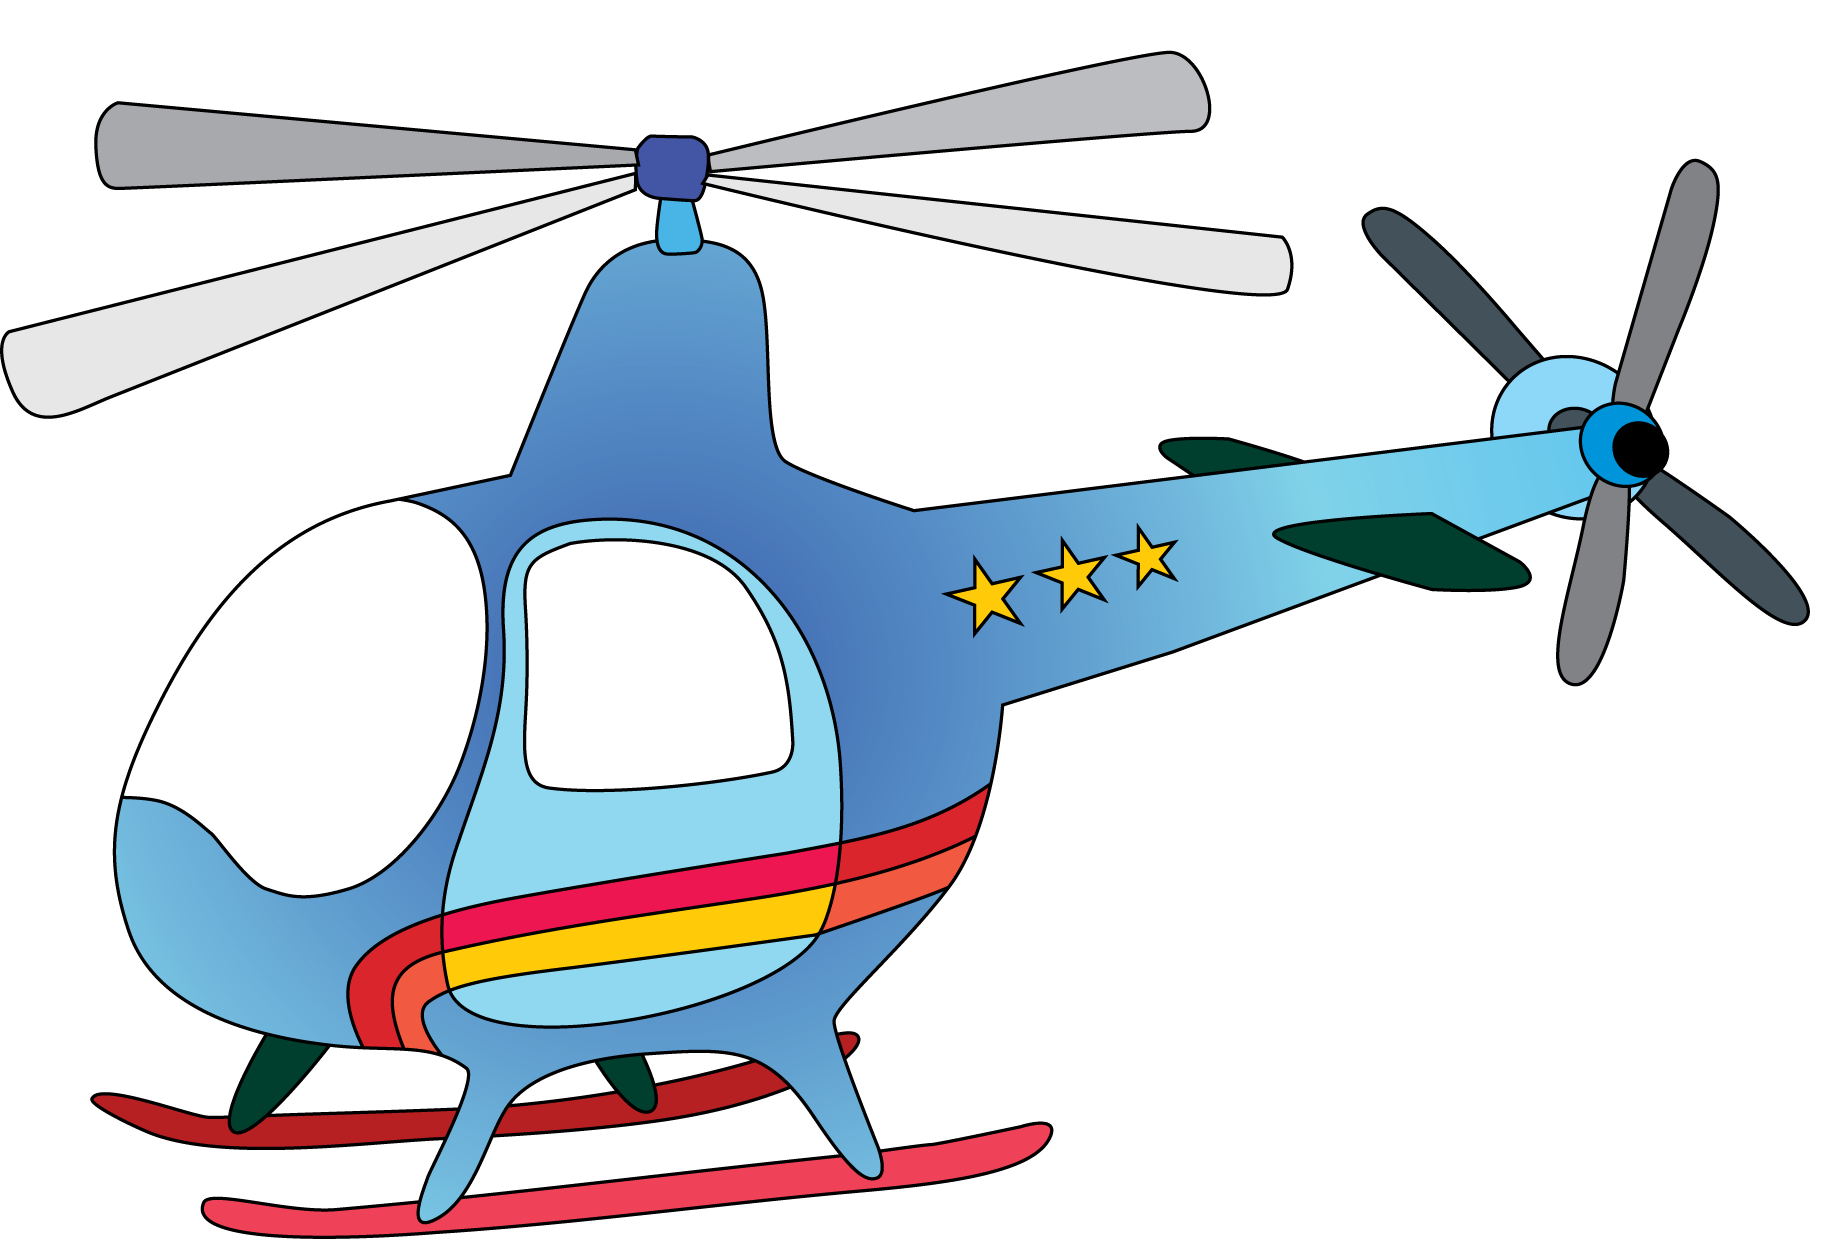 Helicopter clipart #11, Download drawings